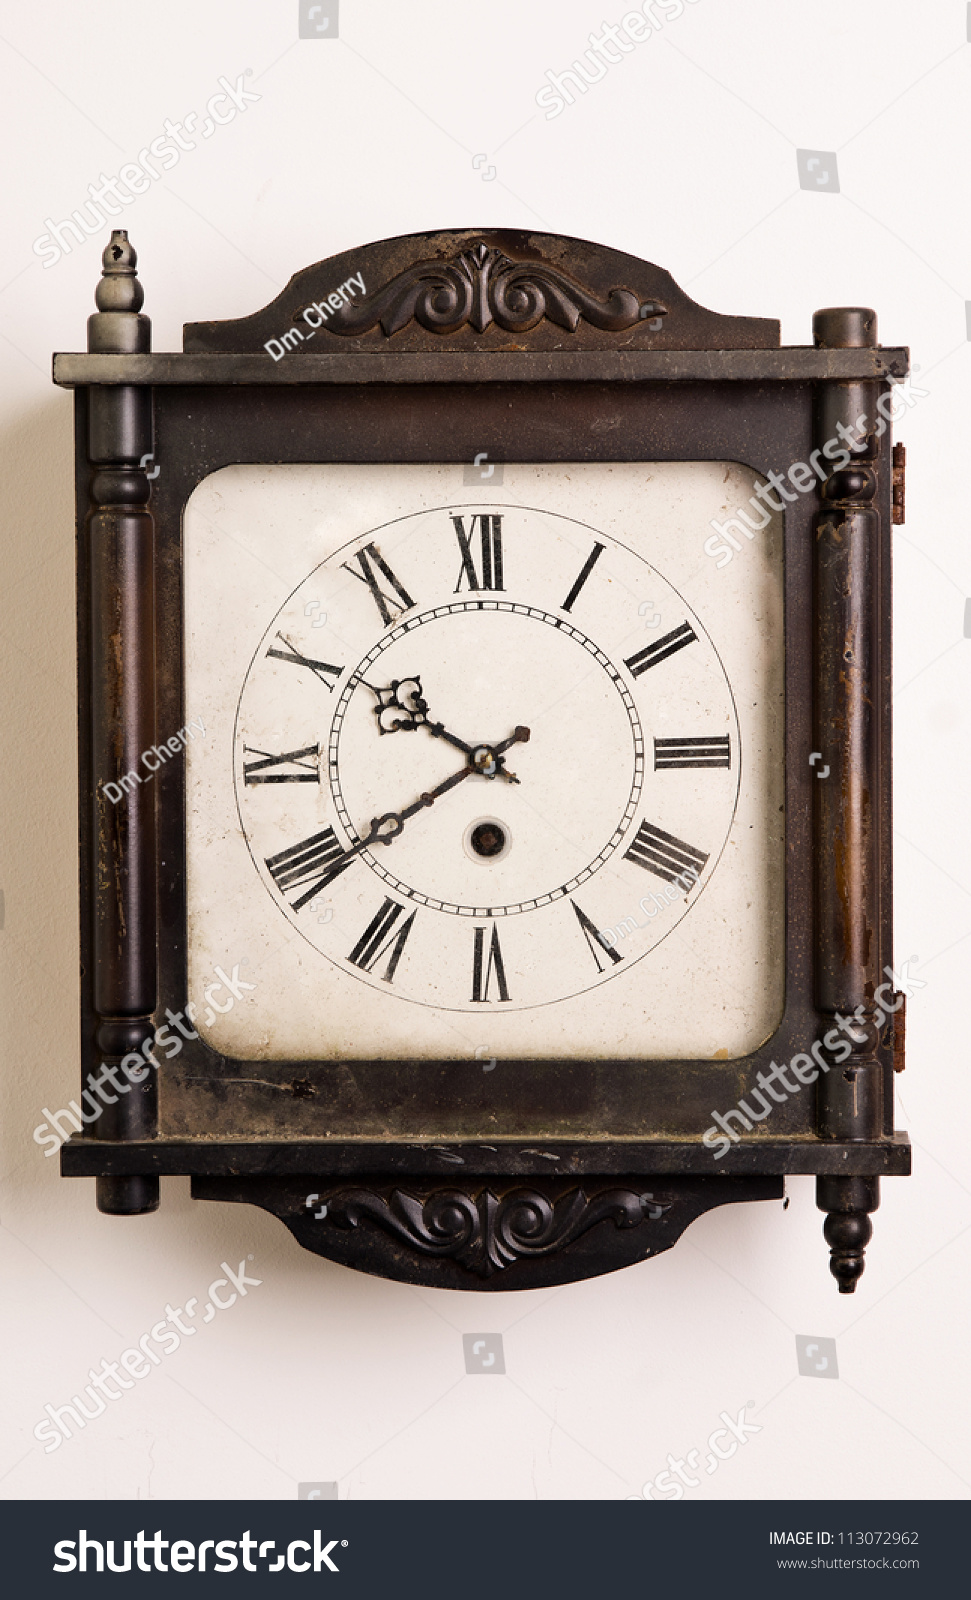 Old wooden grandfather clock hanging on a wall stock photo 113072962 shutterstock - Wall hanging grandfather clock ...